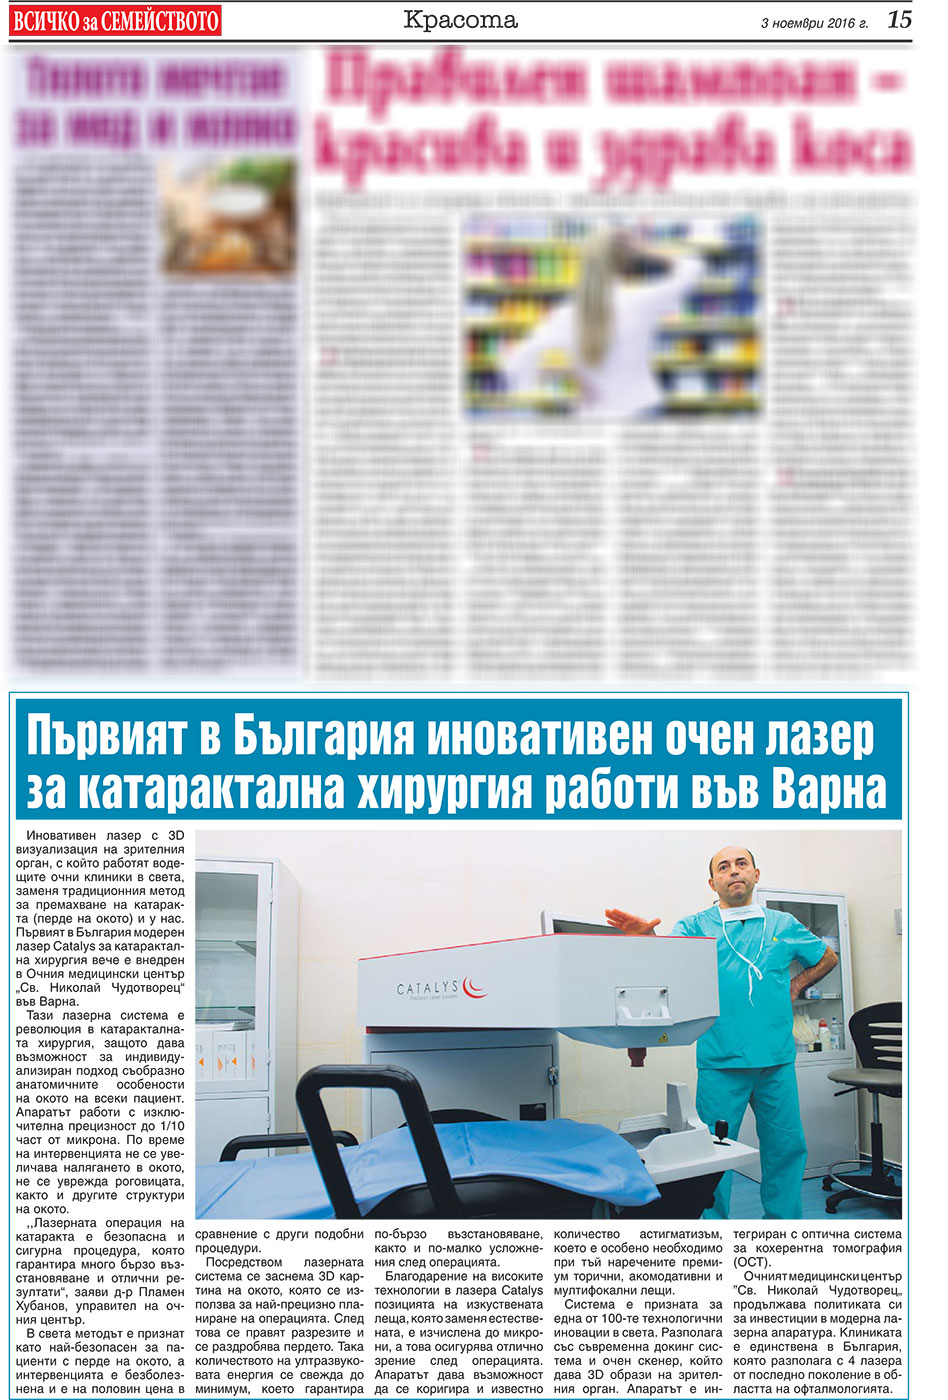 The first of its kind in Bulgaria: an innovative eye laser for cataract surgery,  works in Varna